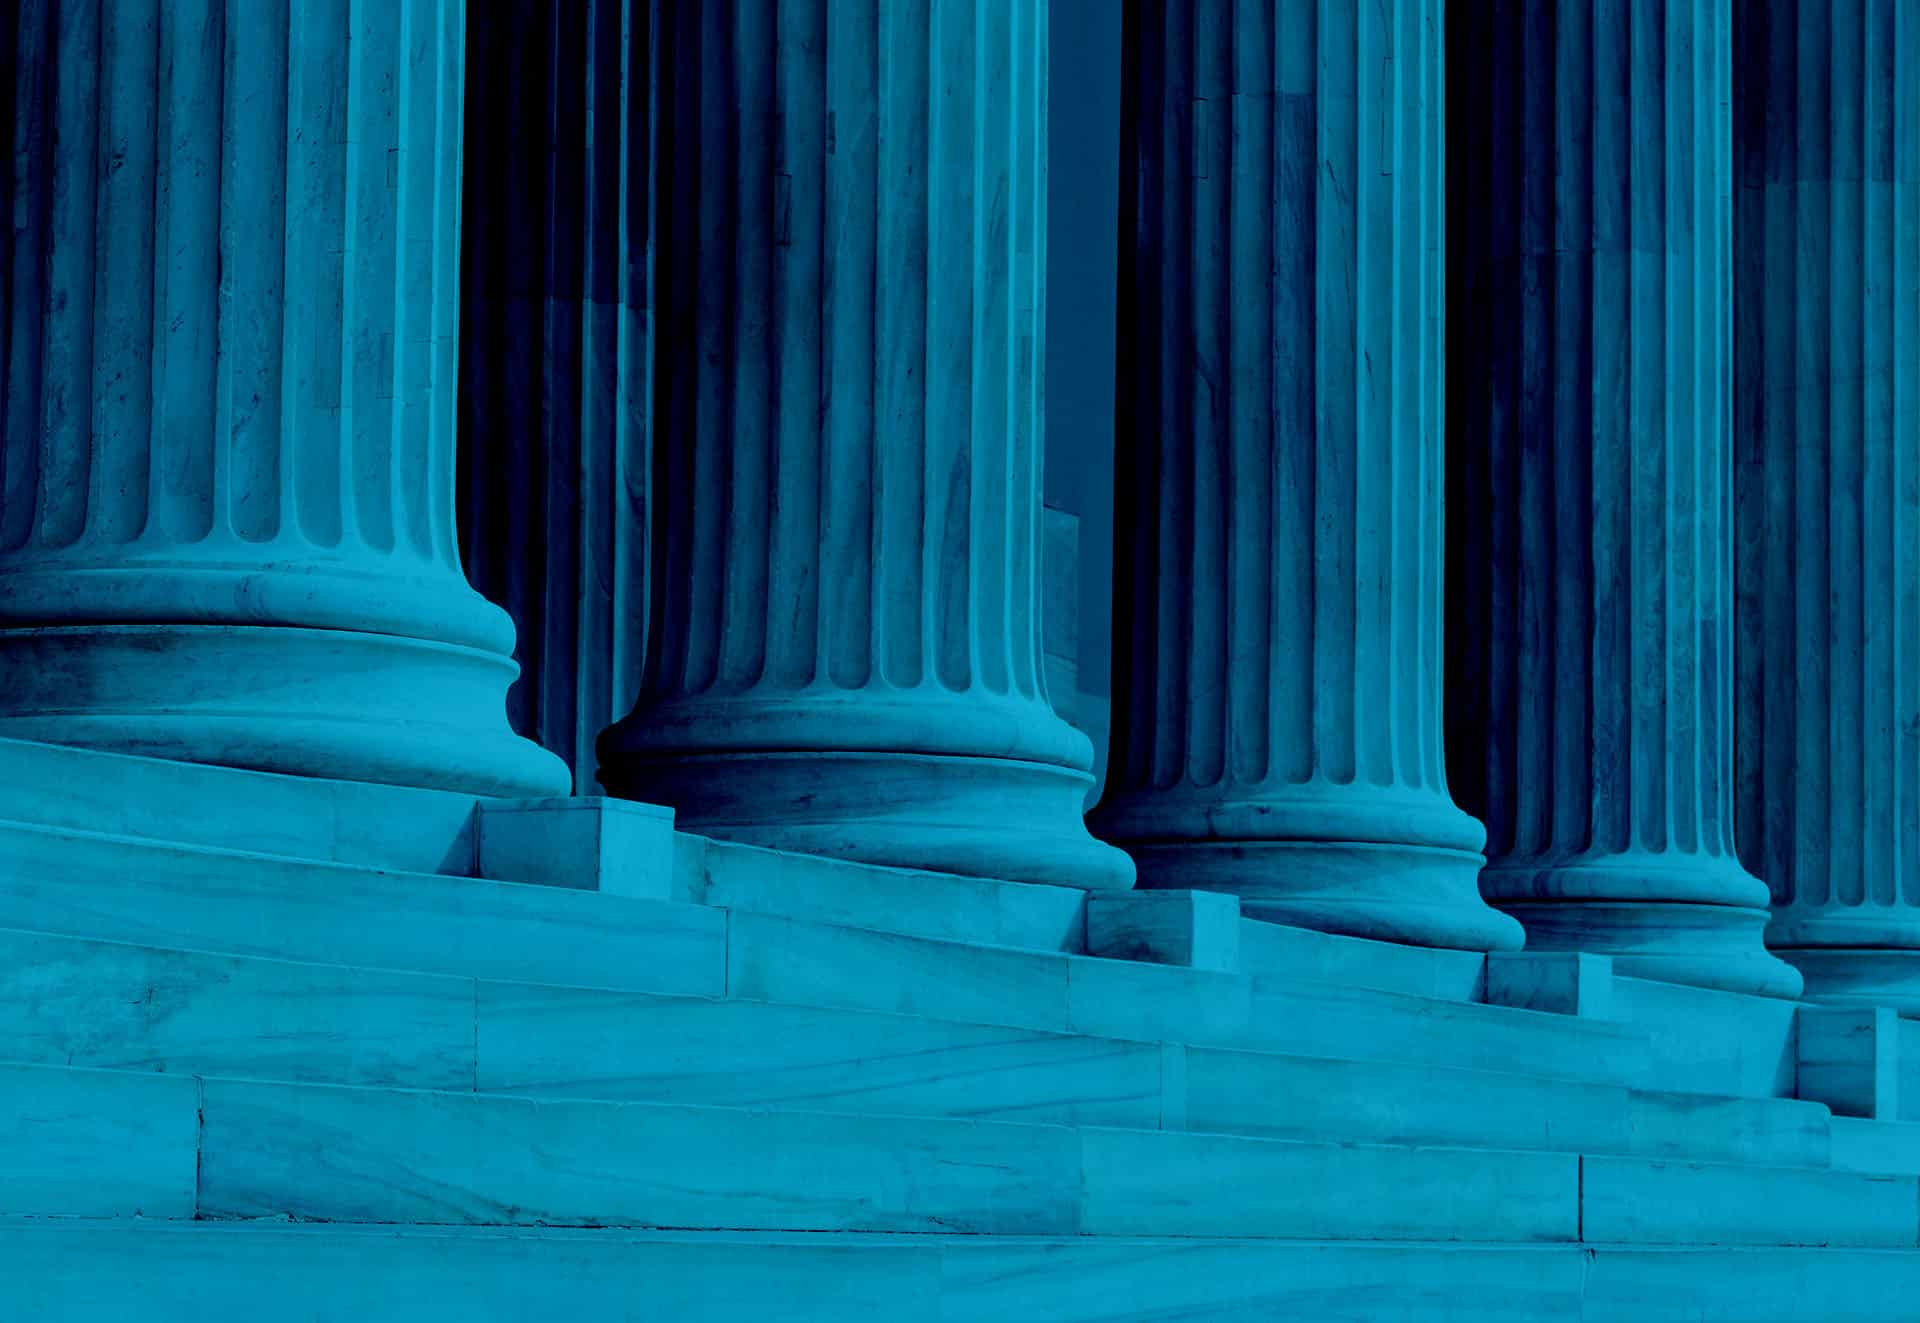 Blue-tinted image of pillars